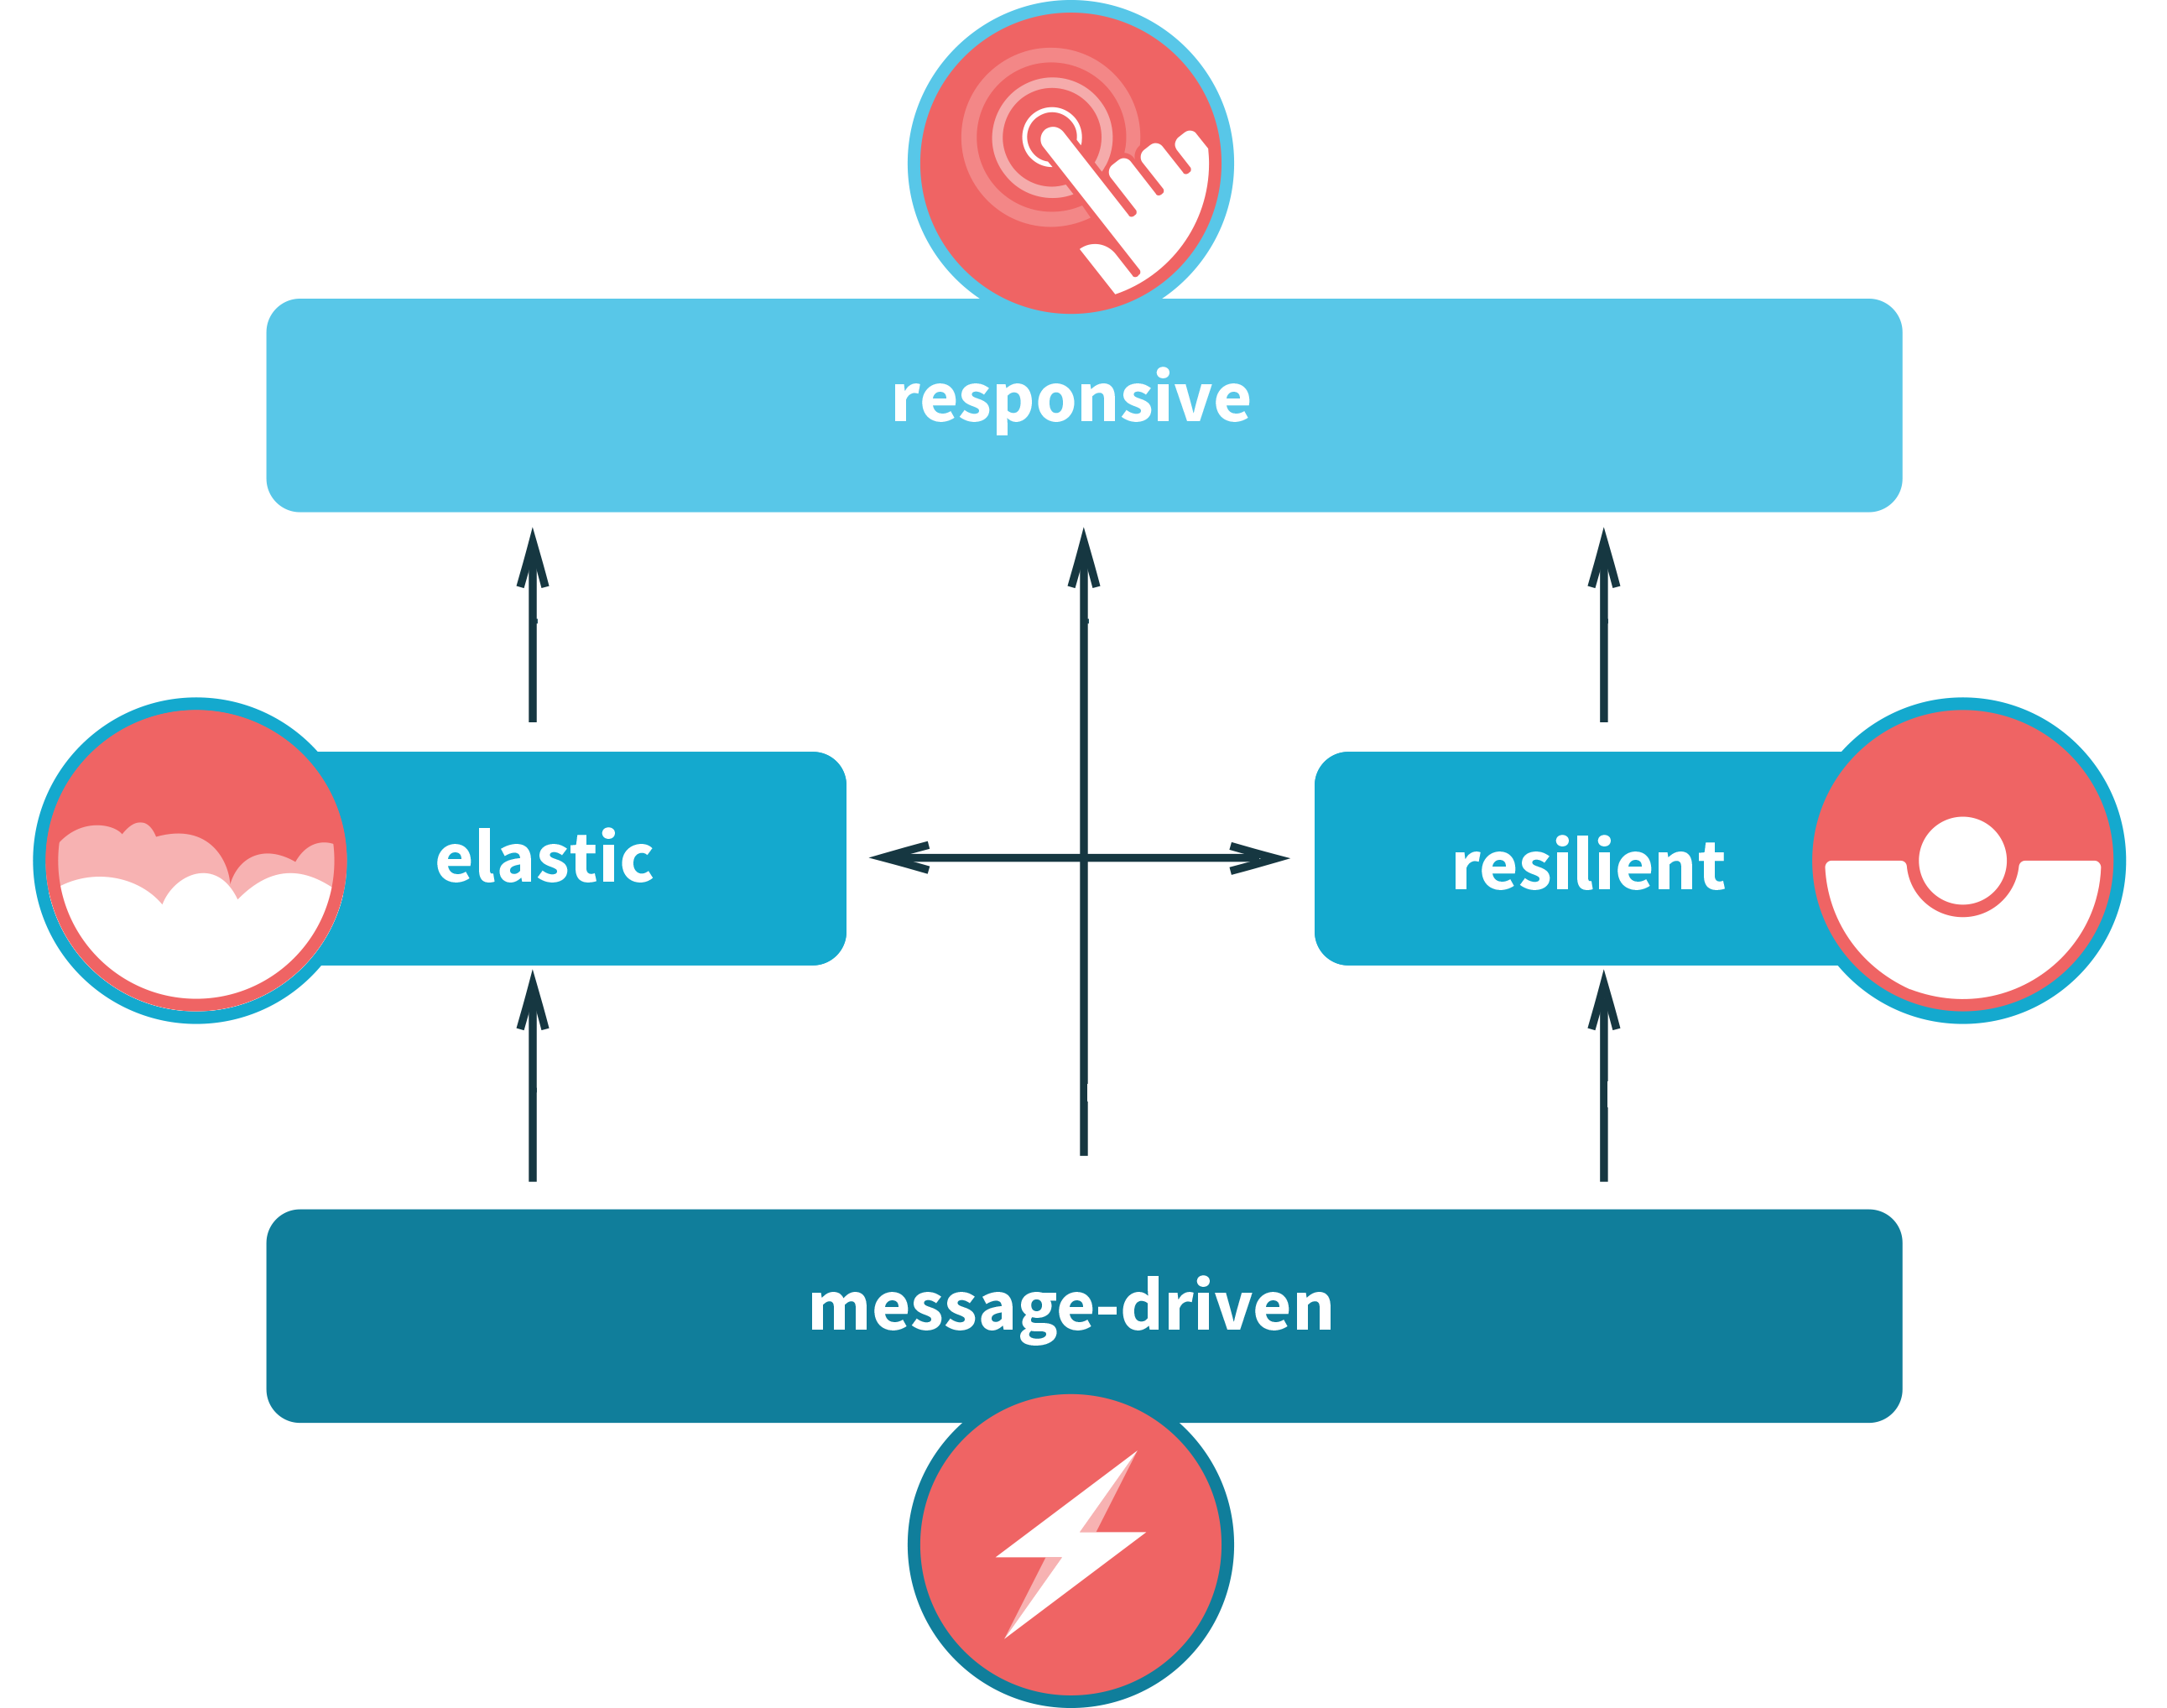 Image of reactive